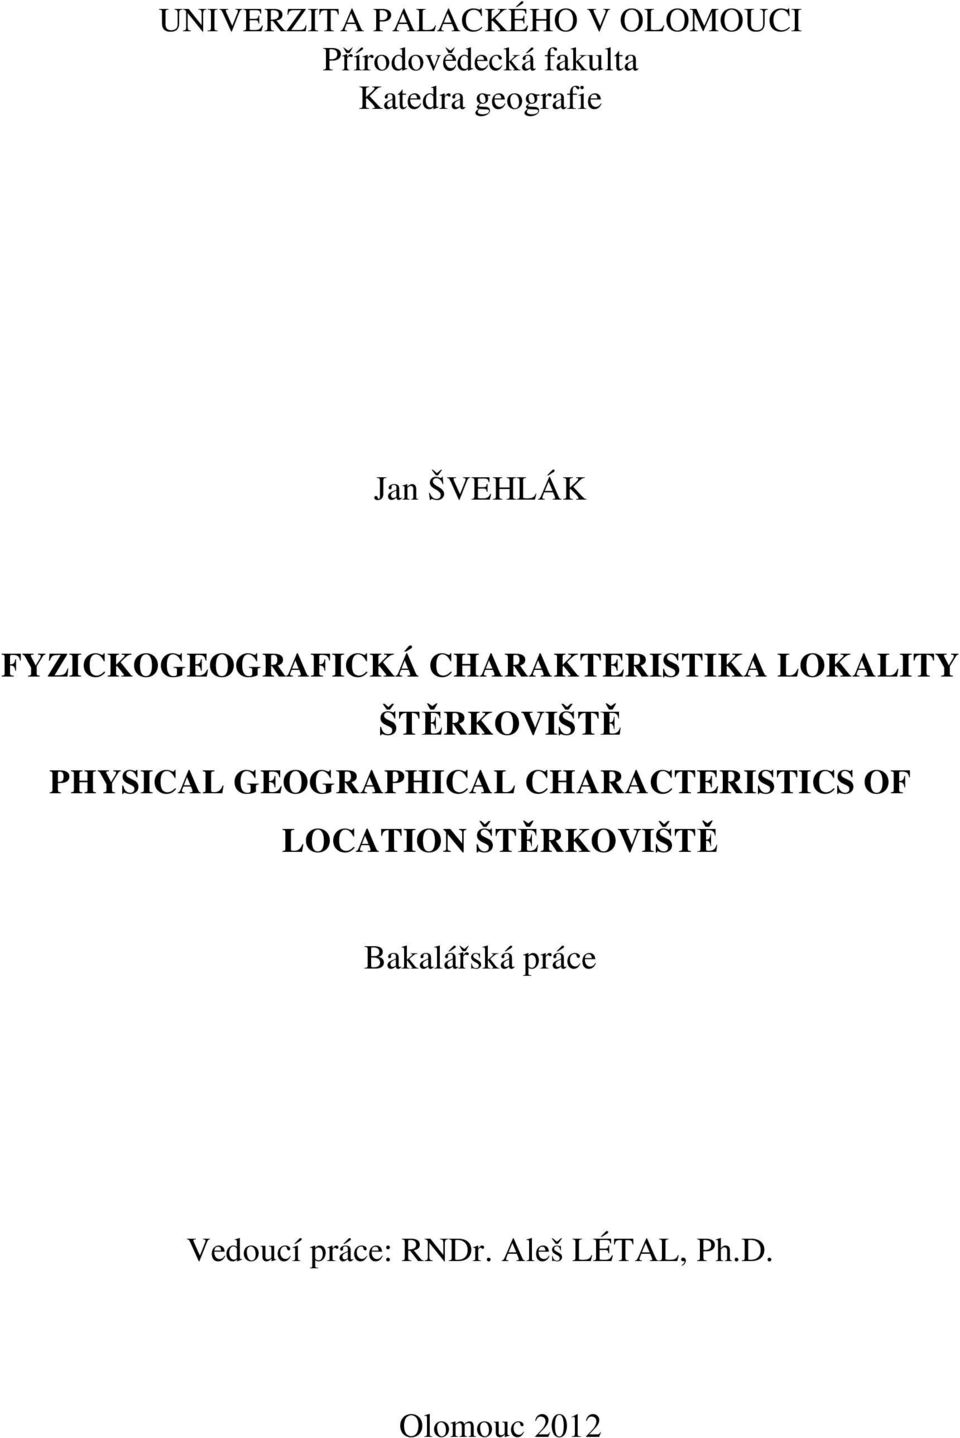 ŠTĚRKOVIŠTĚ PHYSICAL GEOGRAPHICAL CHARACTERISTICS OF LOCATION